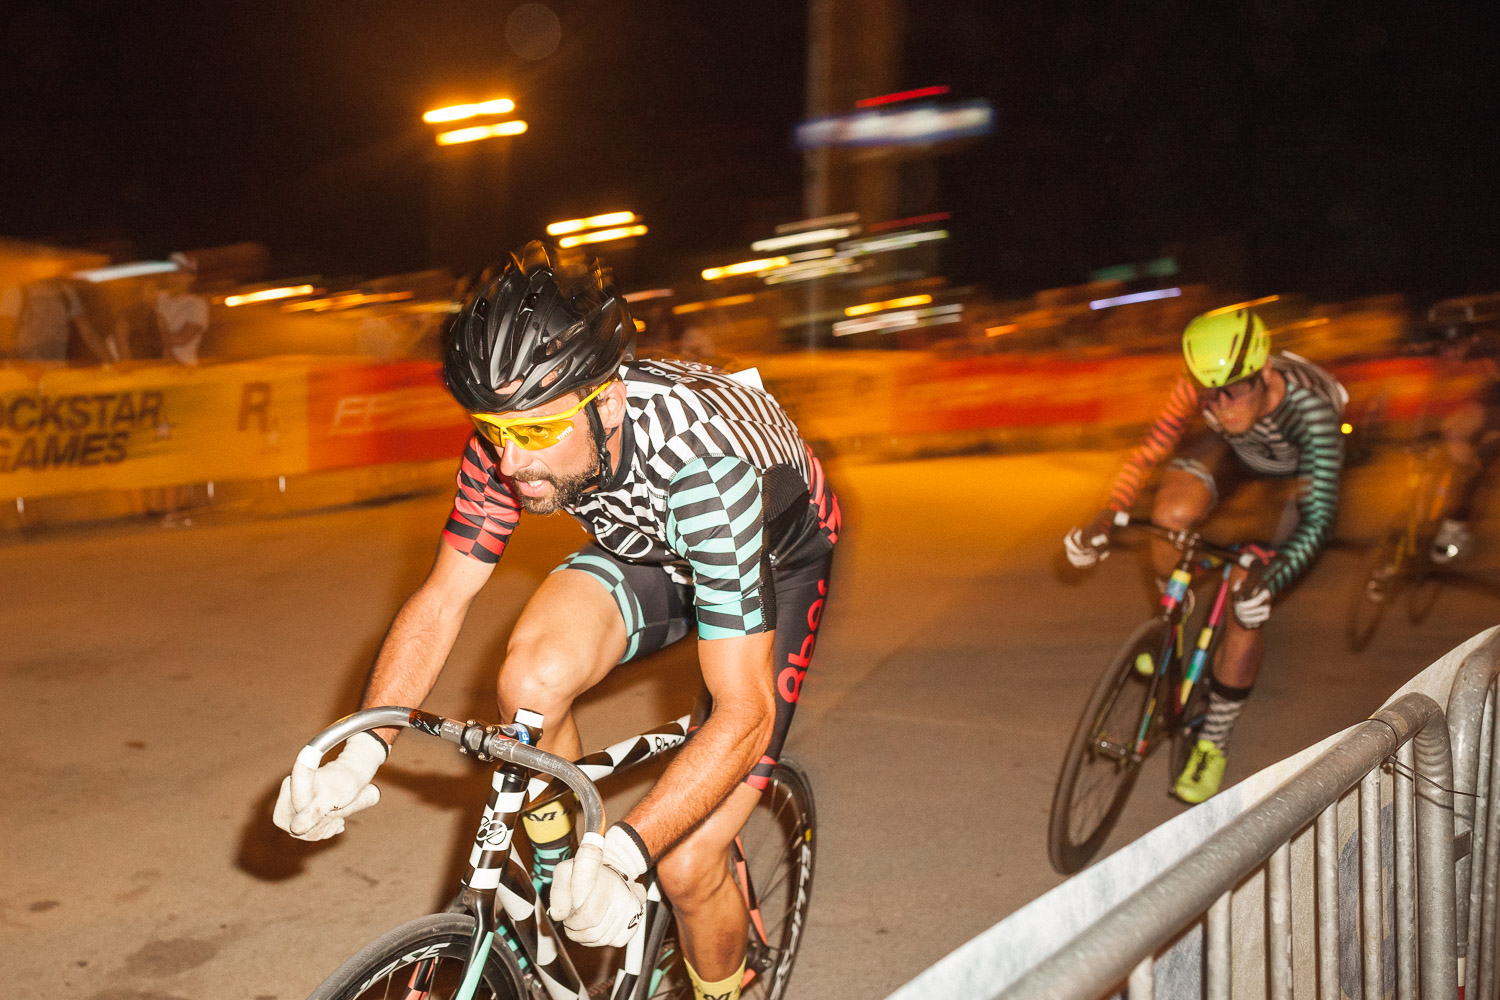 8bar rookies red hook crit barcelona fixie fixed gear183 - 8bar at Red Hook Criterium Barcelona 2016